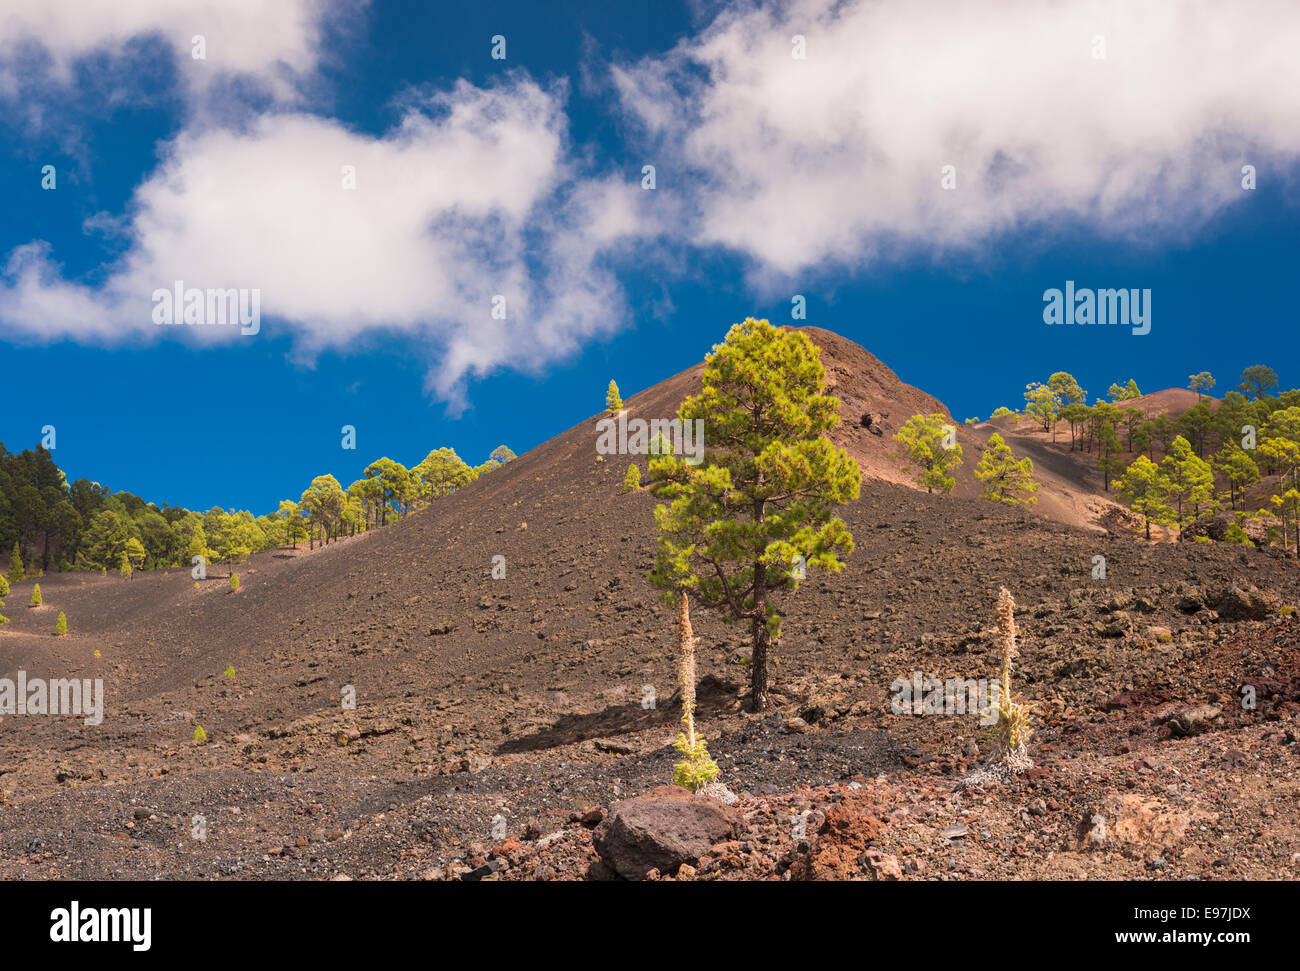 Montana Boca Cangrejo, a scoria cone in western Tenerife formed in the 1492 eruption, with taginaste rojo in foreground Stock Photo